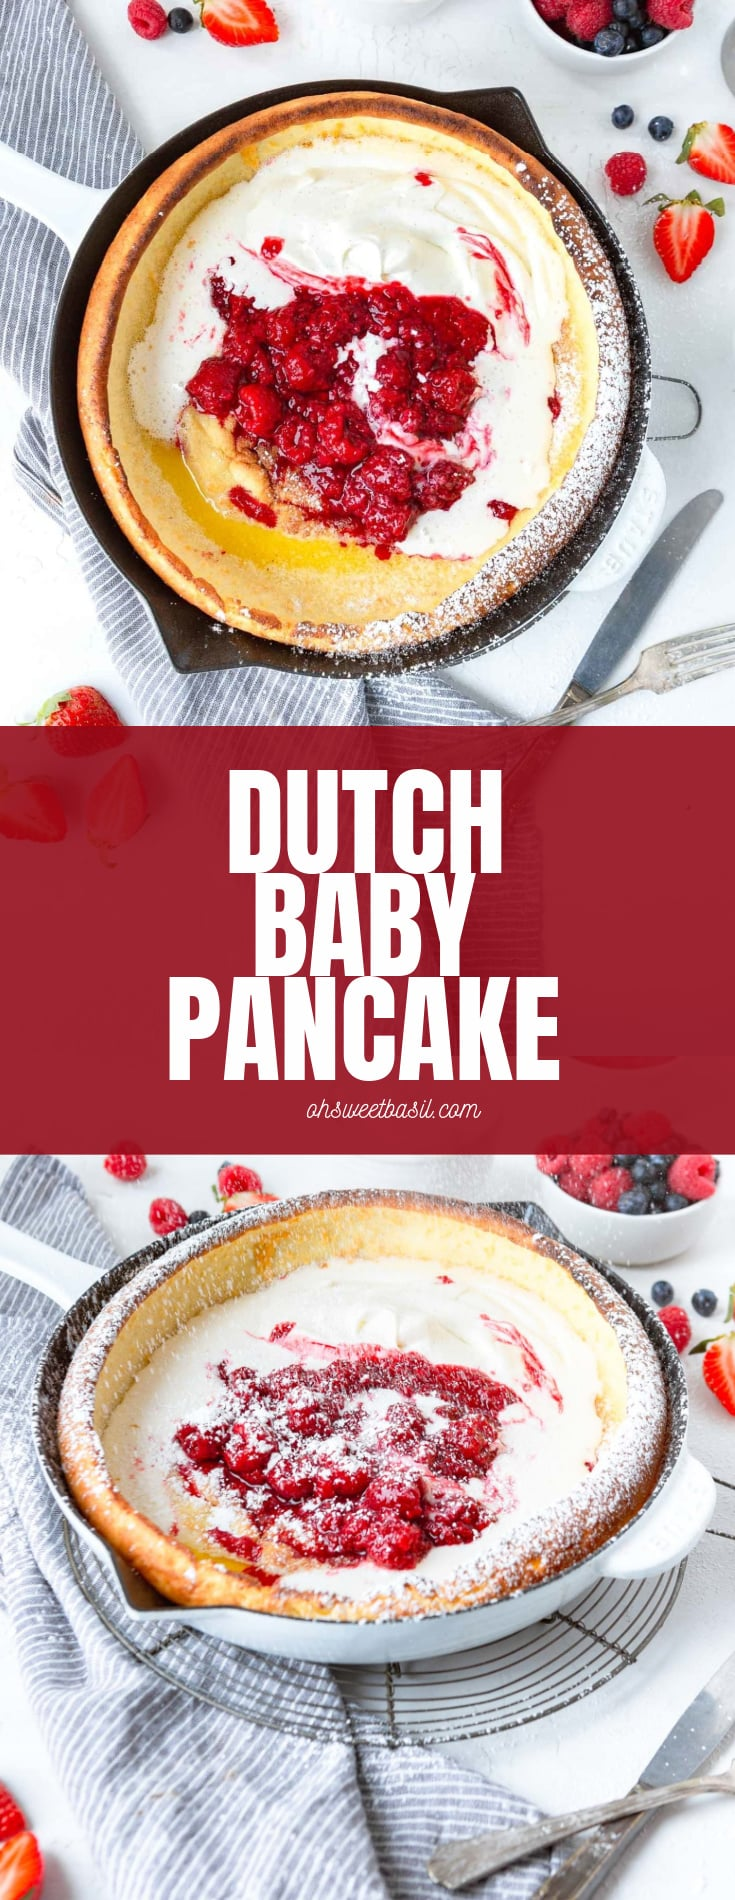 A photo of a baked dutch baby pancake topped with whipped cream and fresh berries.